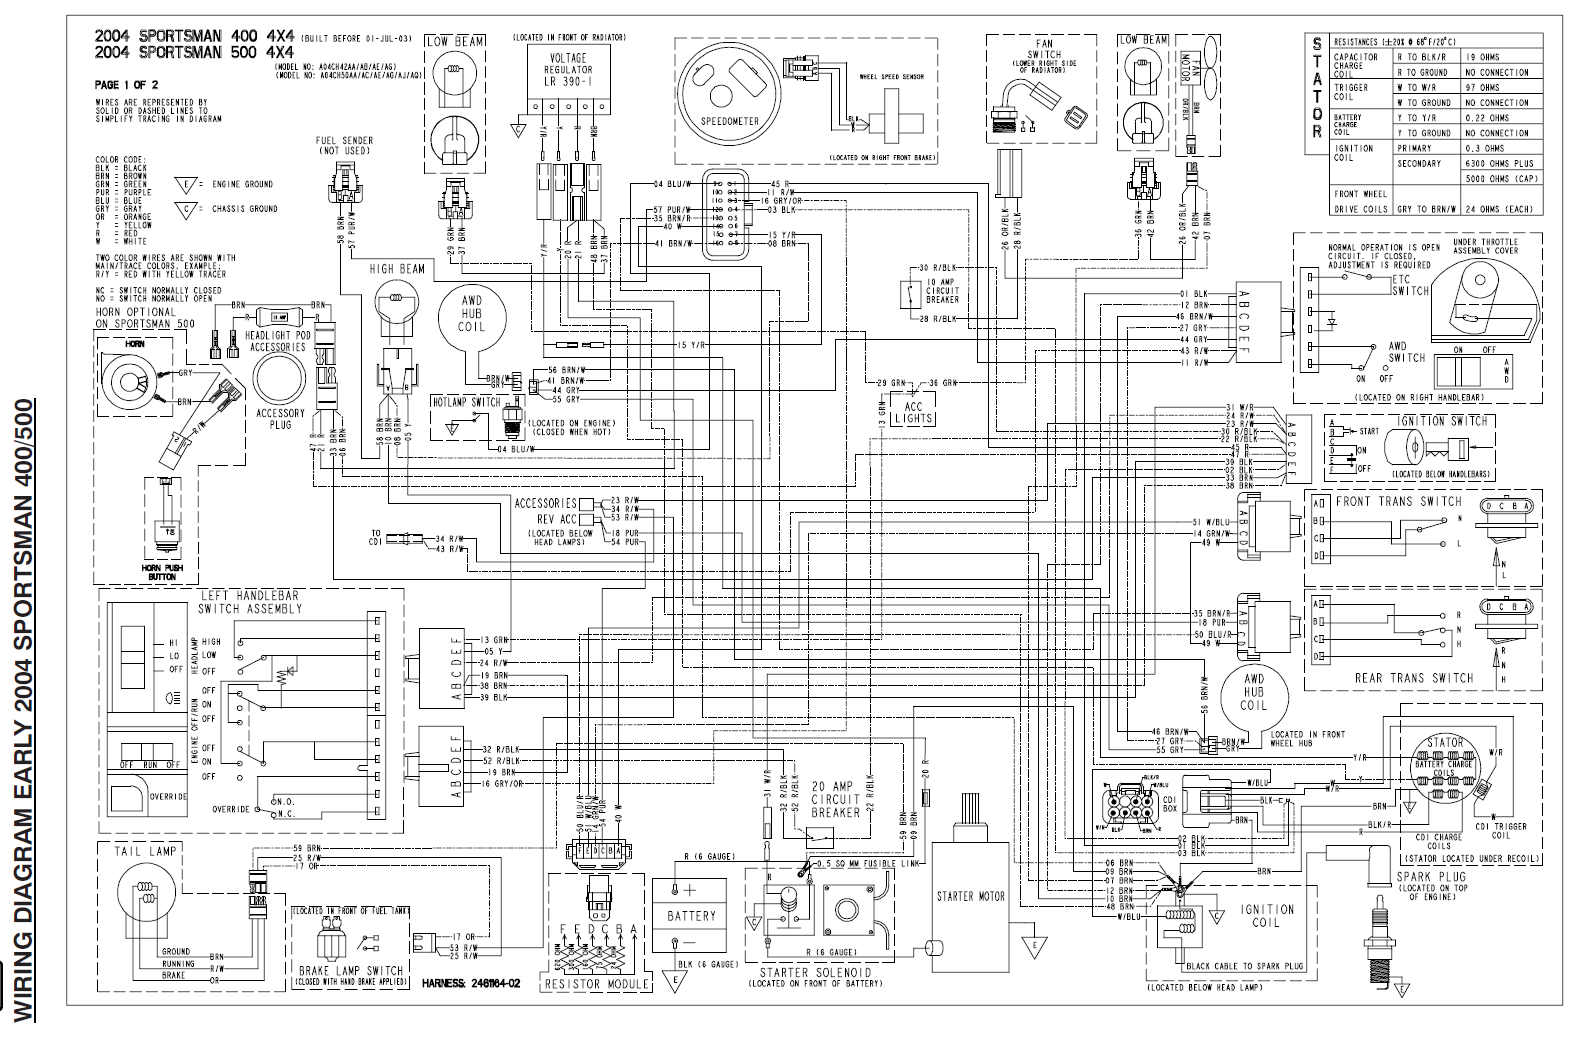 2002 Polaris Sportsman 700 Wiring Diagram from www.polarisatvforums.com